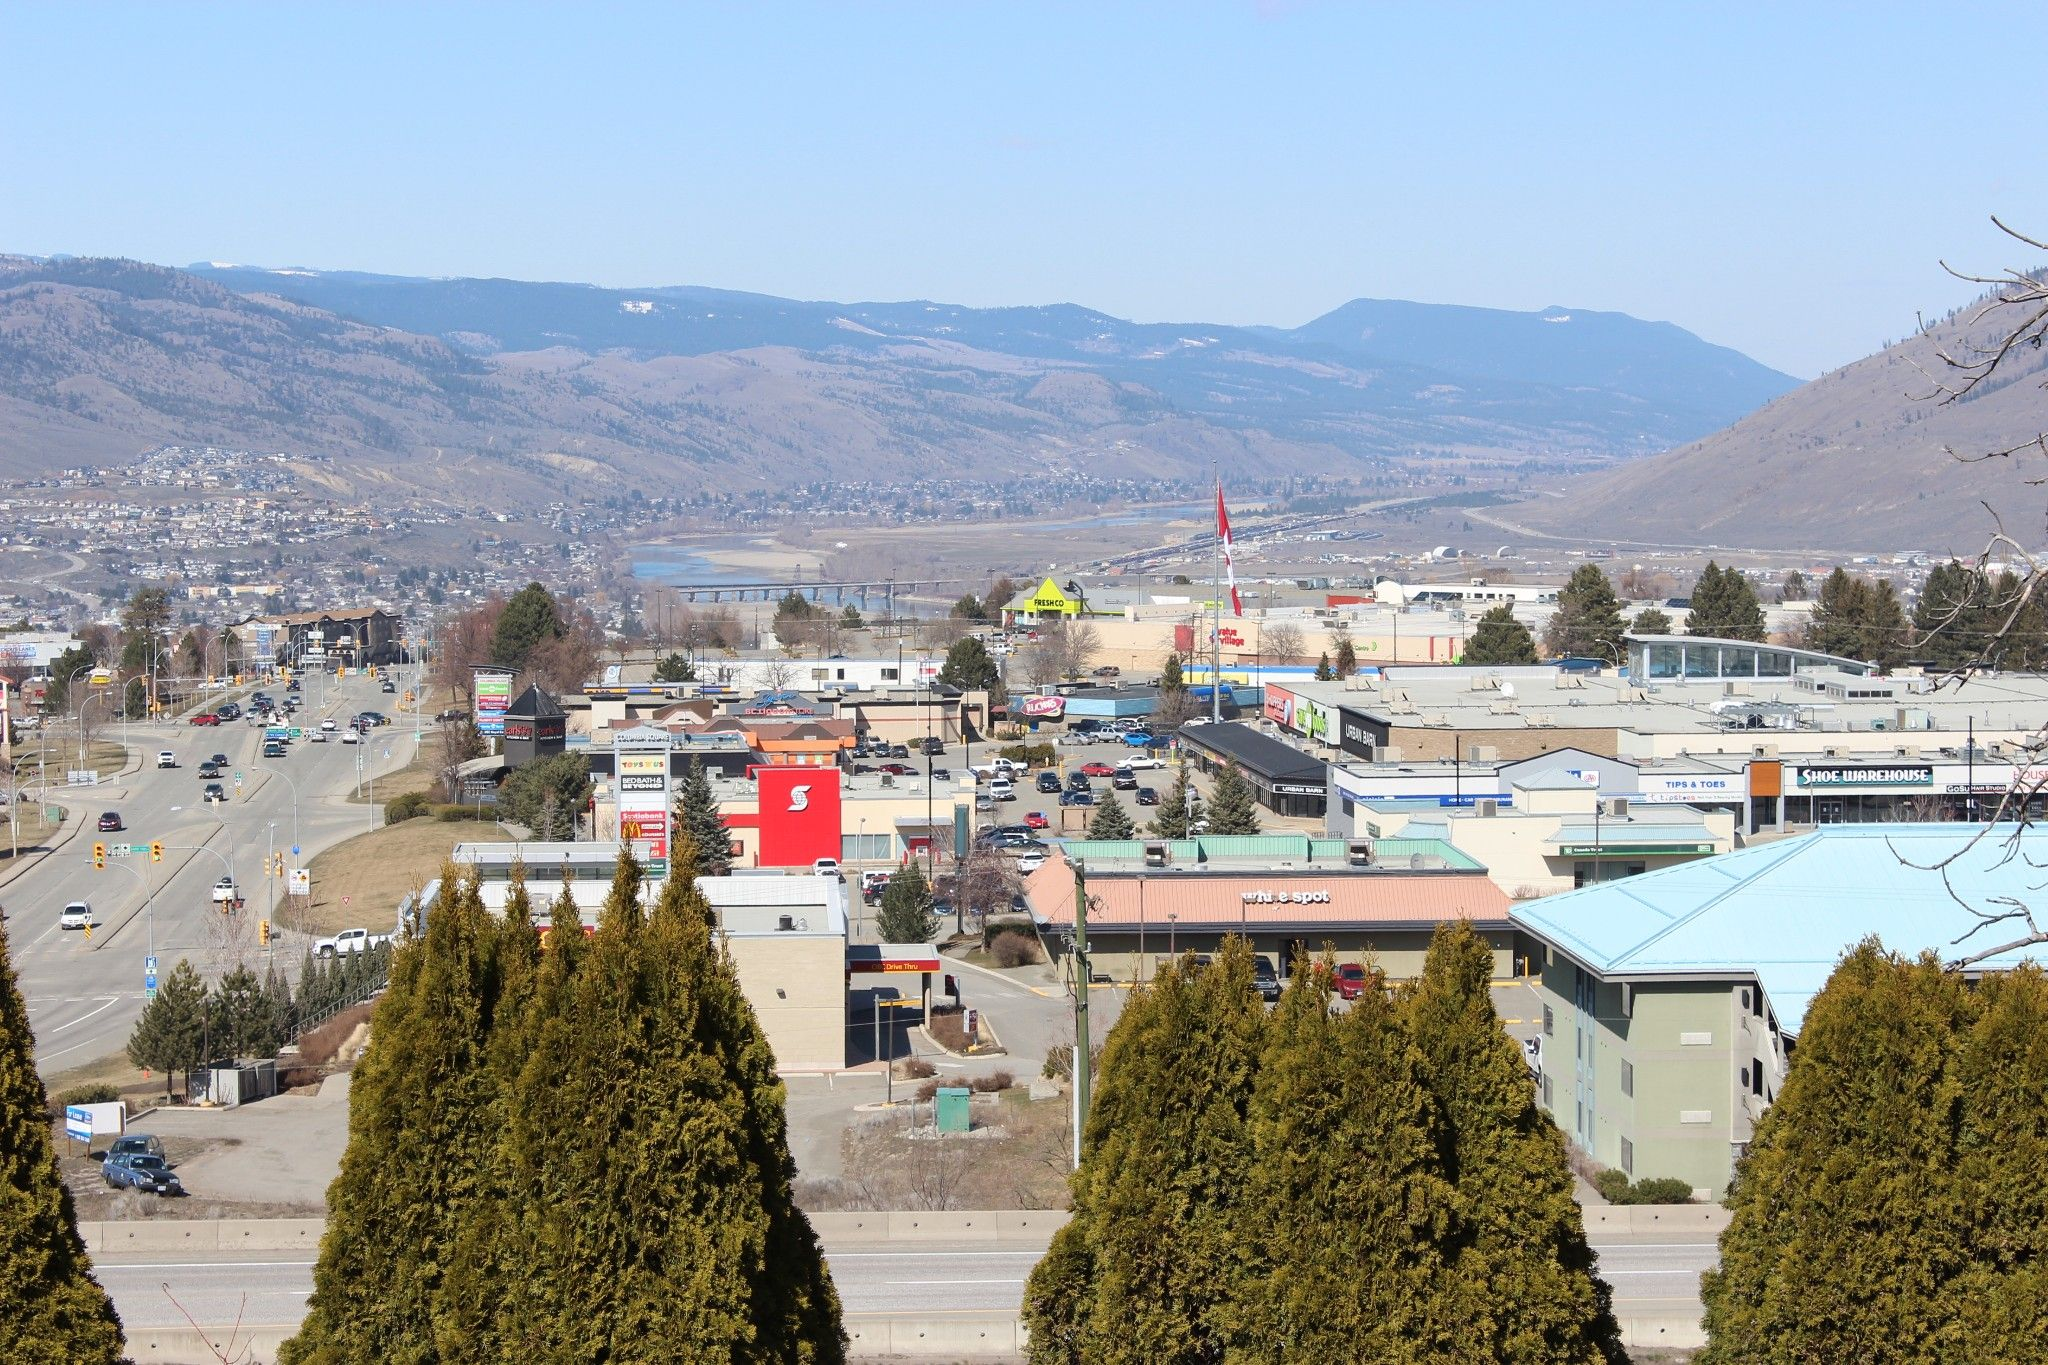 Photo 18: Photos: 4 1580 Springhill Drive in Kamloops: Sahali Townhouse for sale : MLS®# 156043